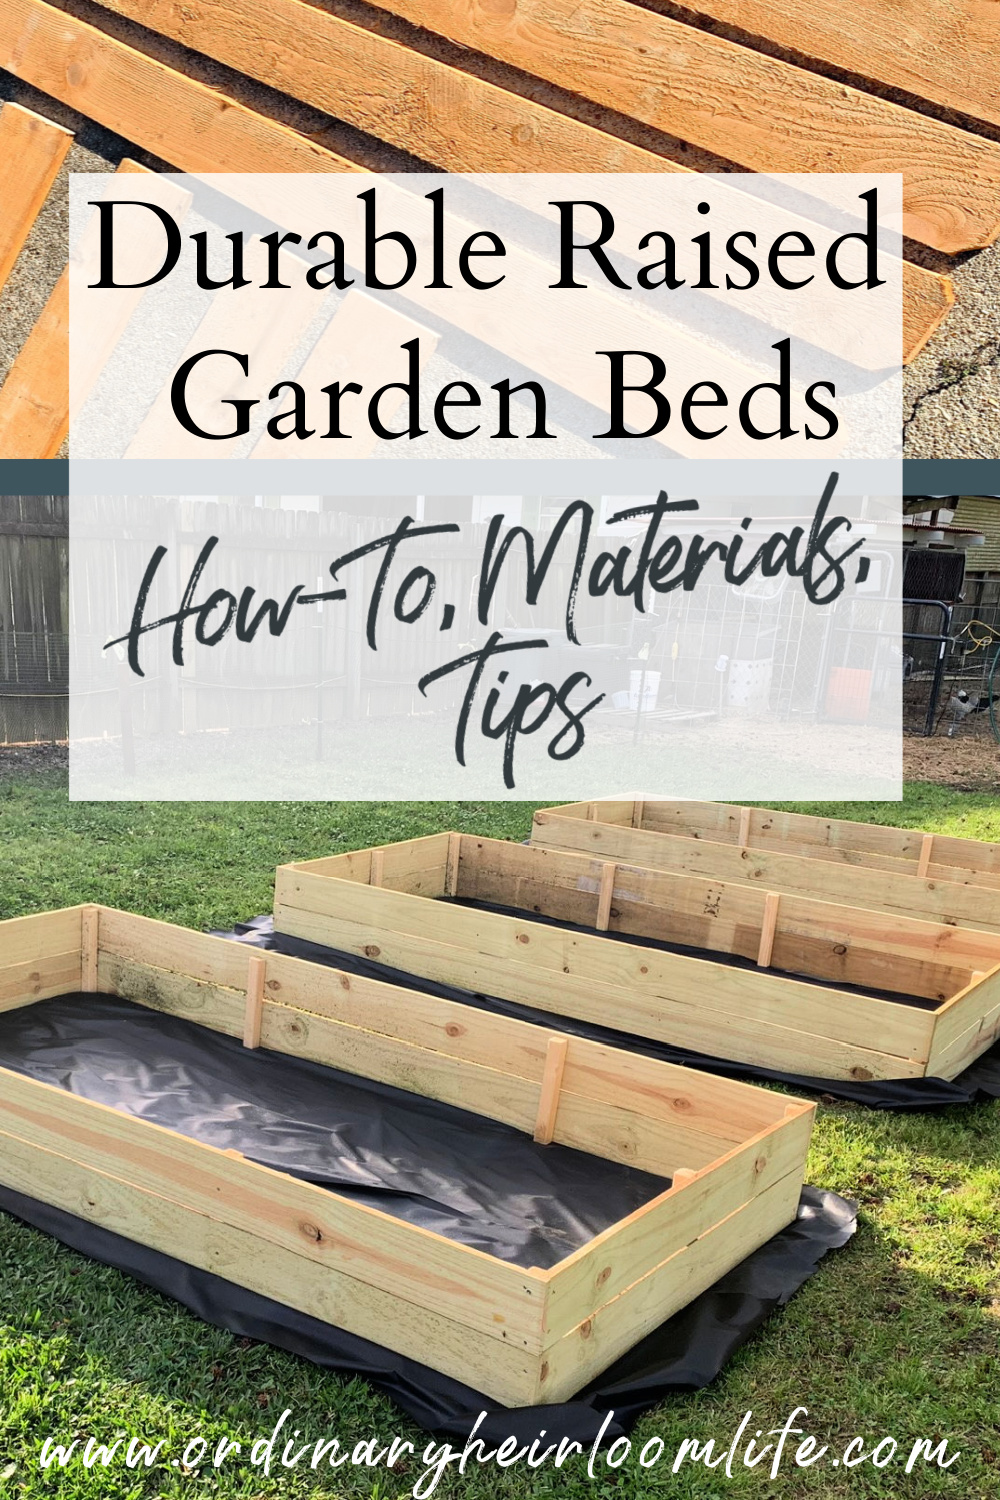 build durable raised garden beds